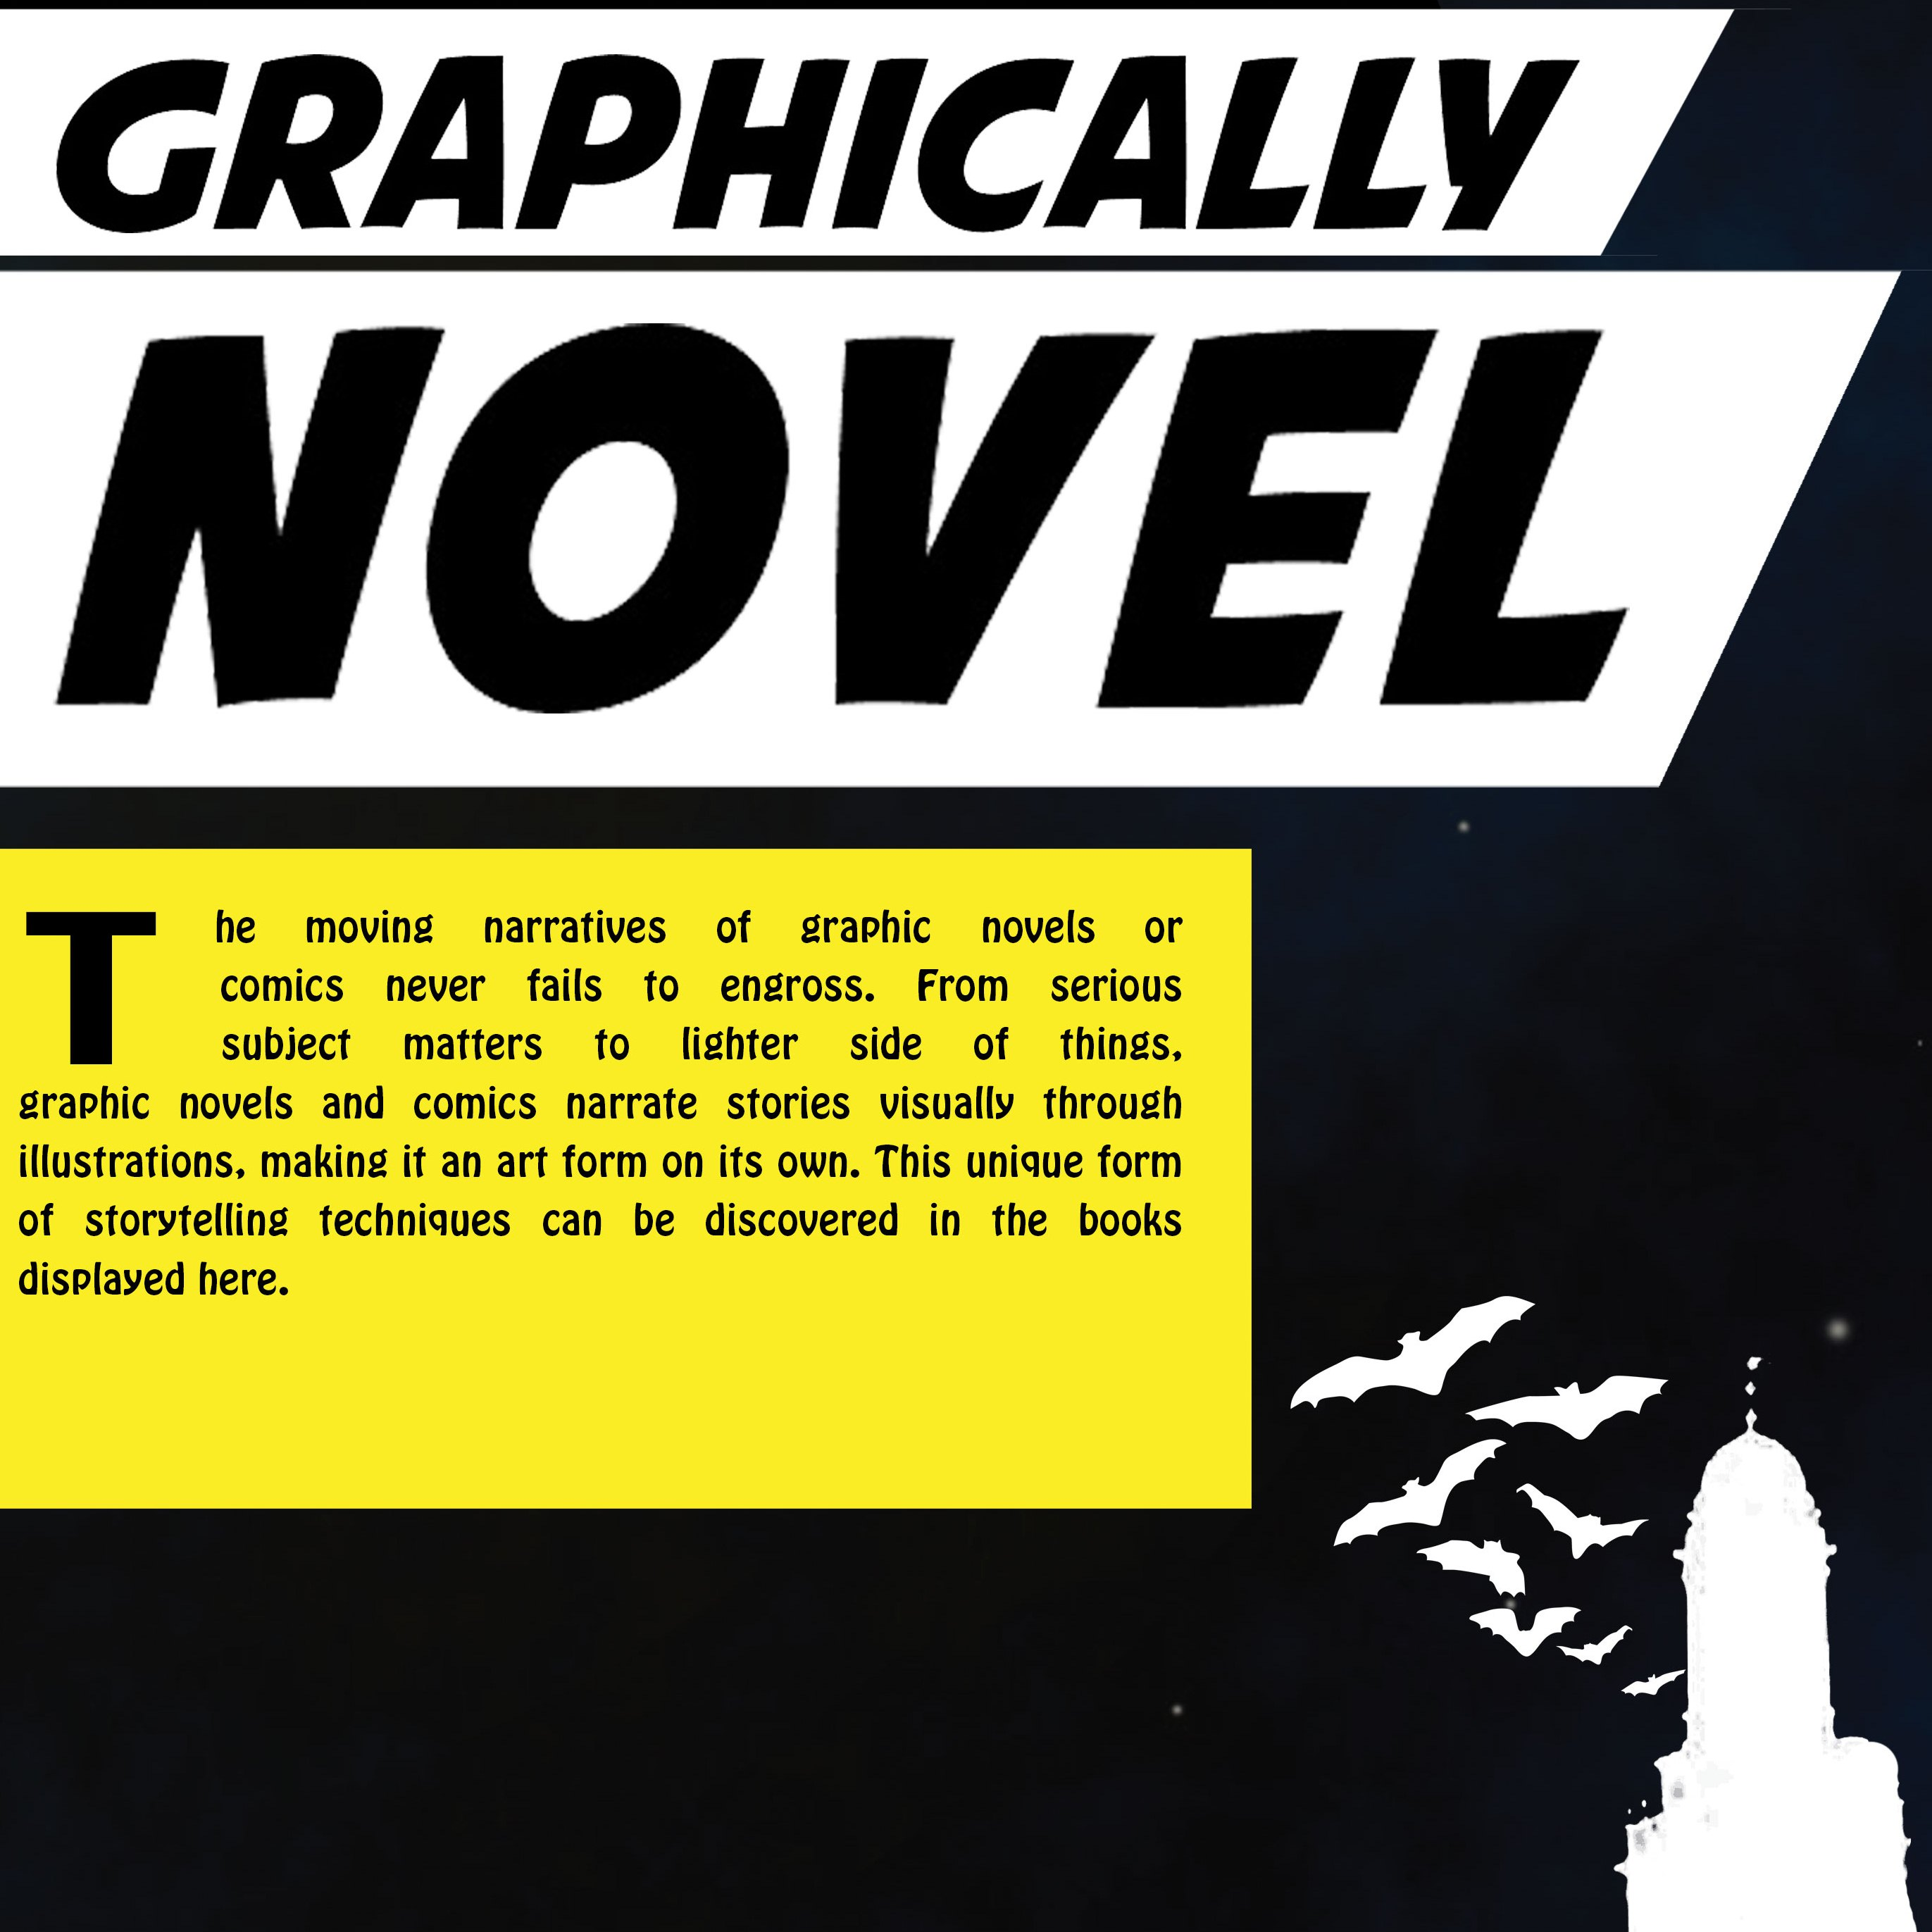 Graphically Novel Book Display @ Communication and Information Library